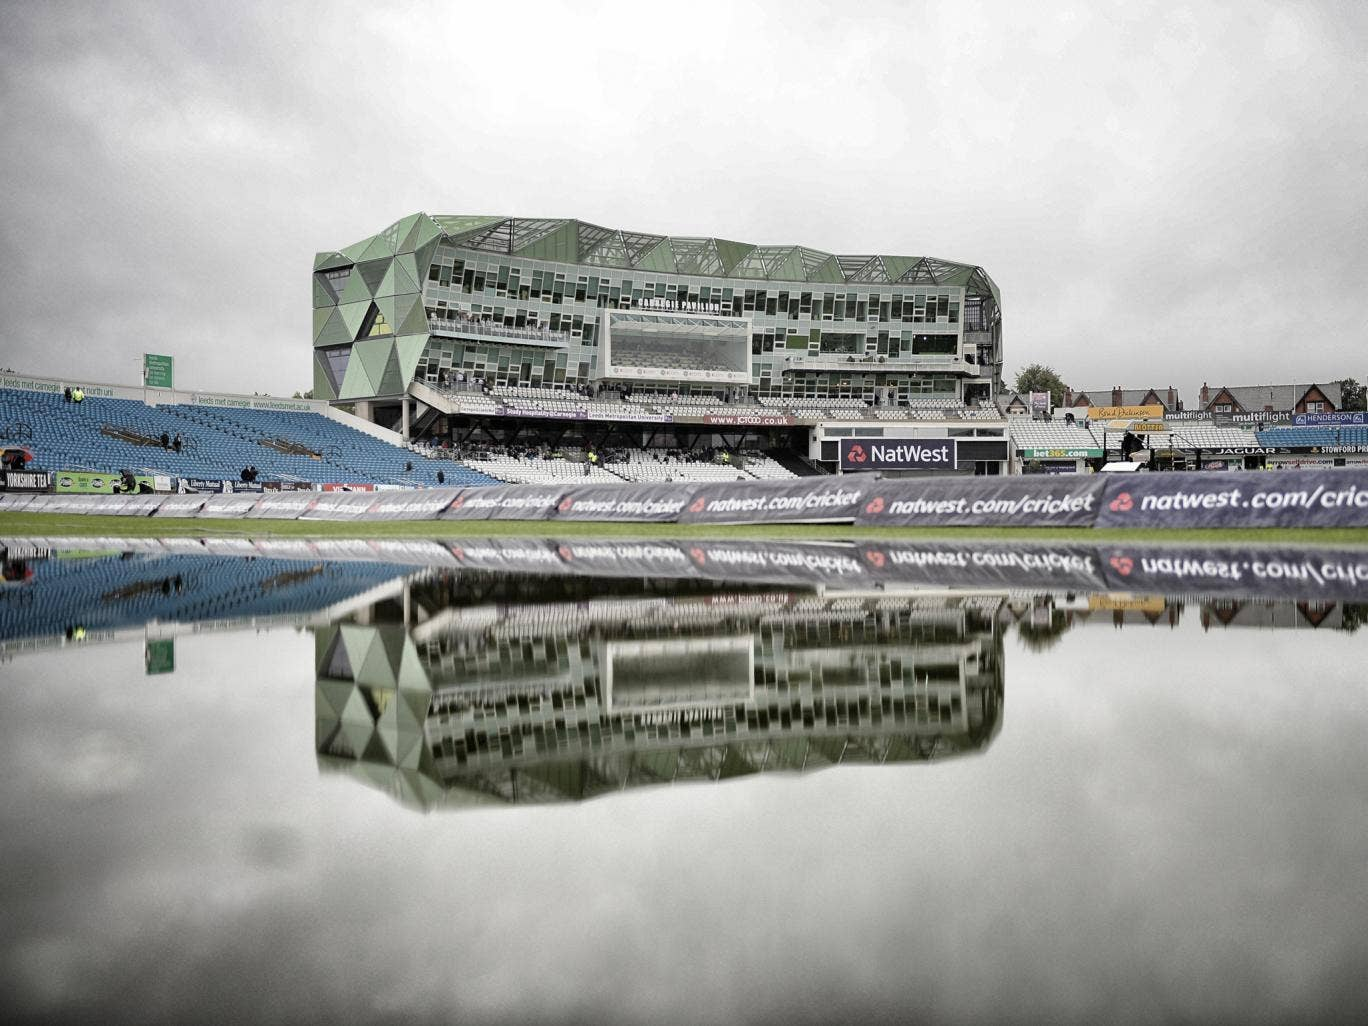 The first ODI between England and Australia has been called off due to rain at Headingley